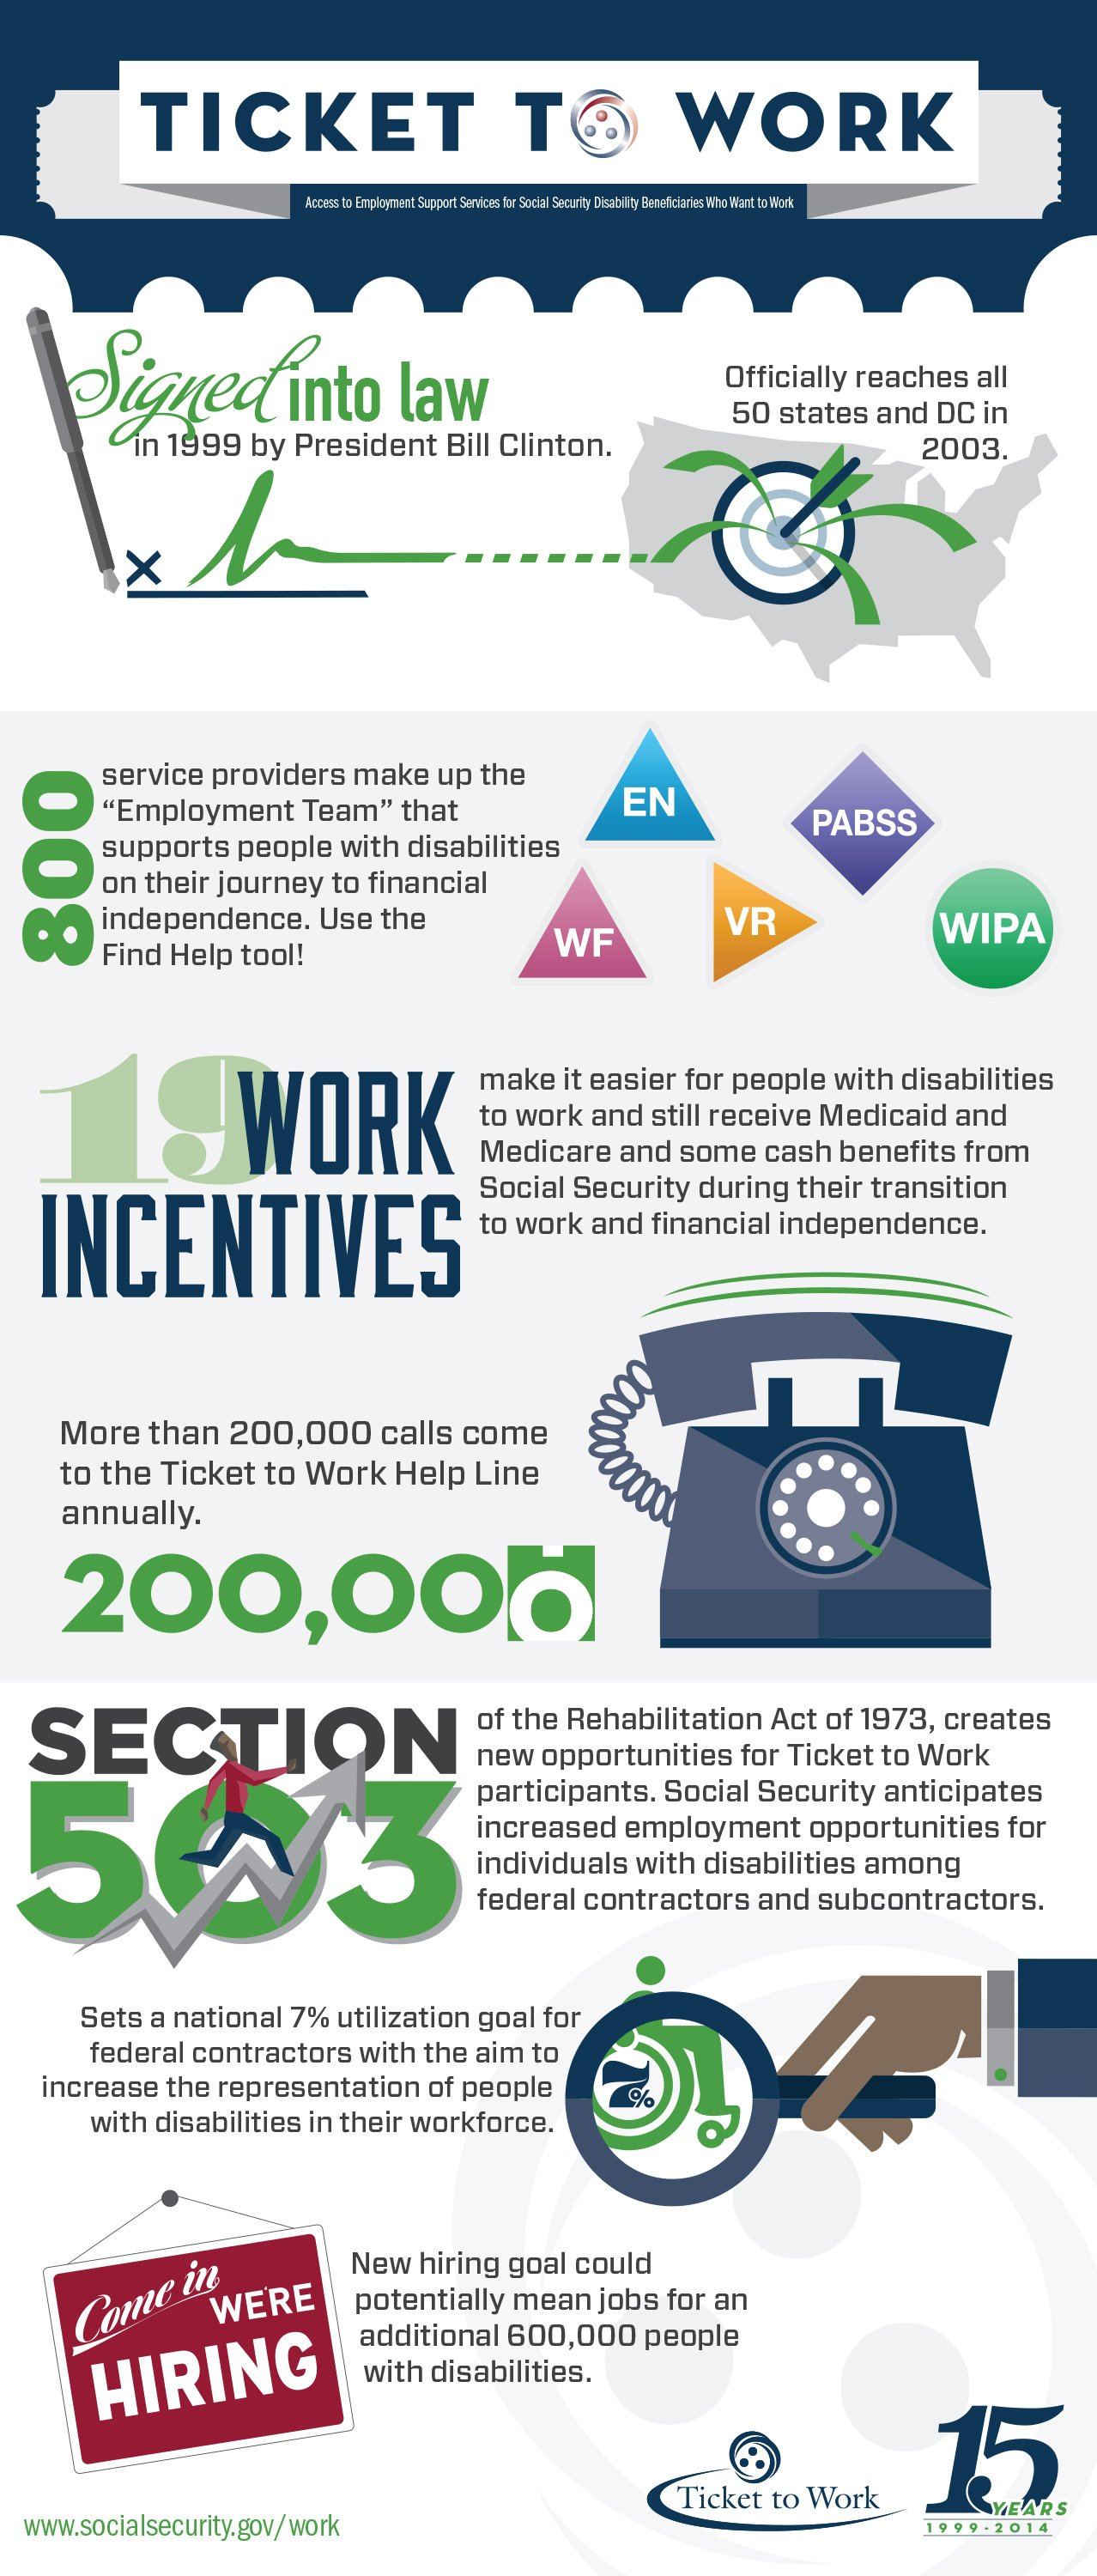 Ticket to Work 15-year Anniversary Infographic